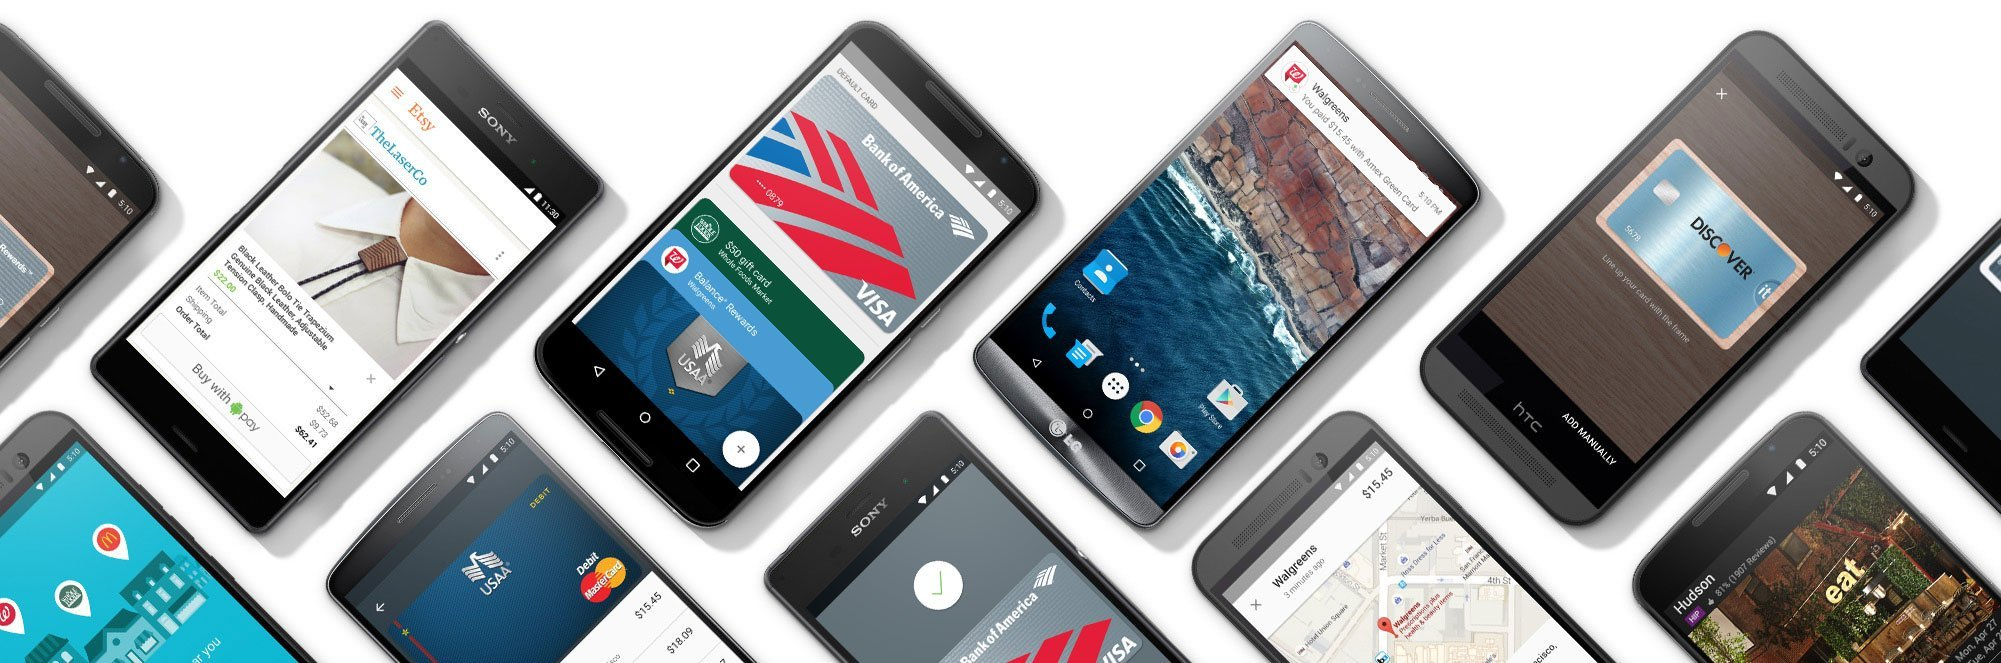 Android Pay est maintenant disponible sur le Play Store